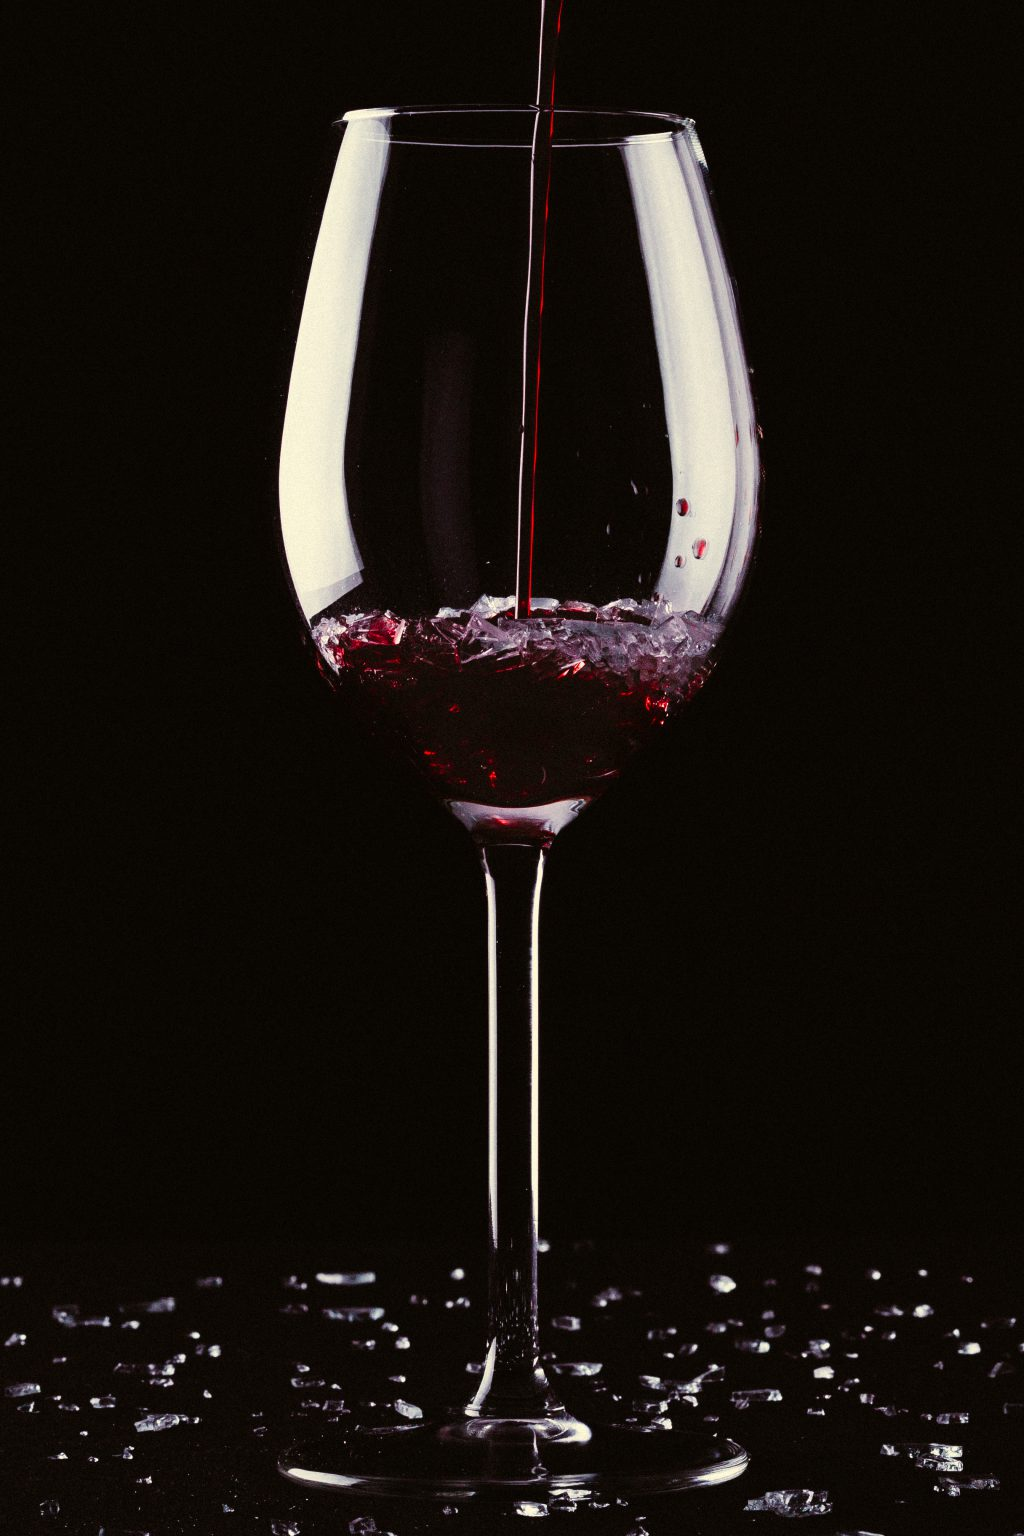 Glass of wine with broken glass - free stock photo